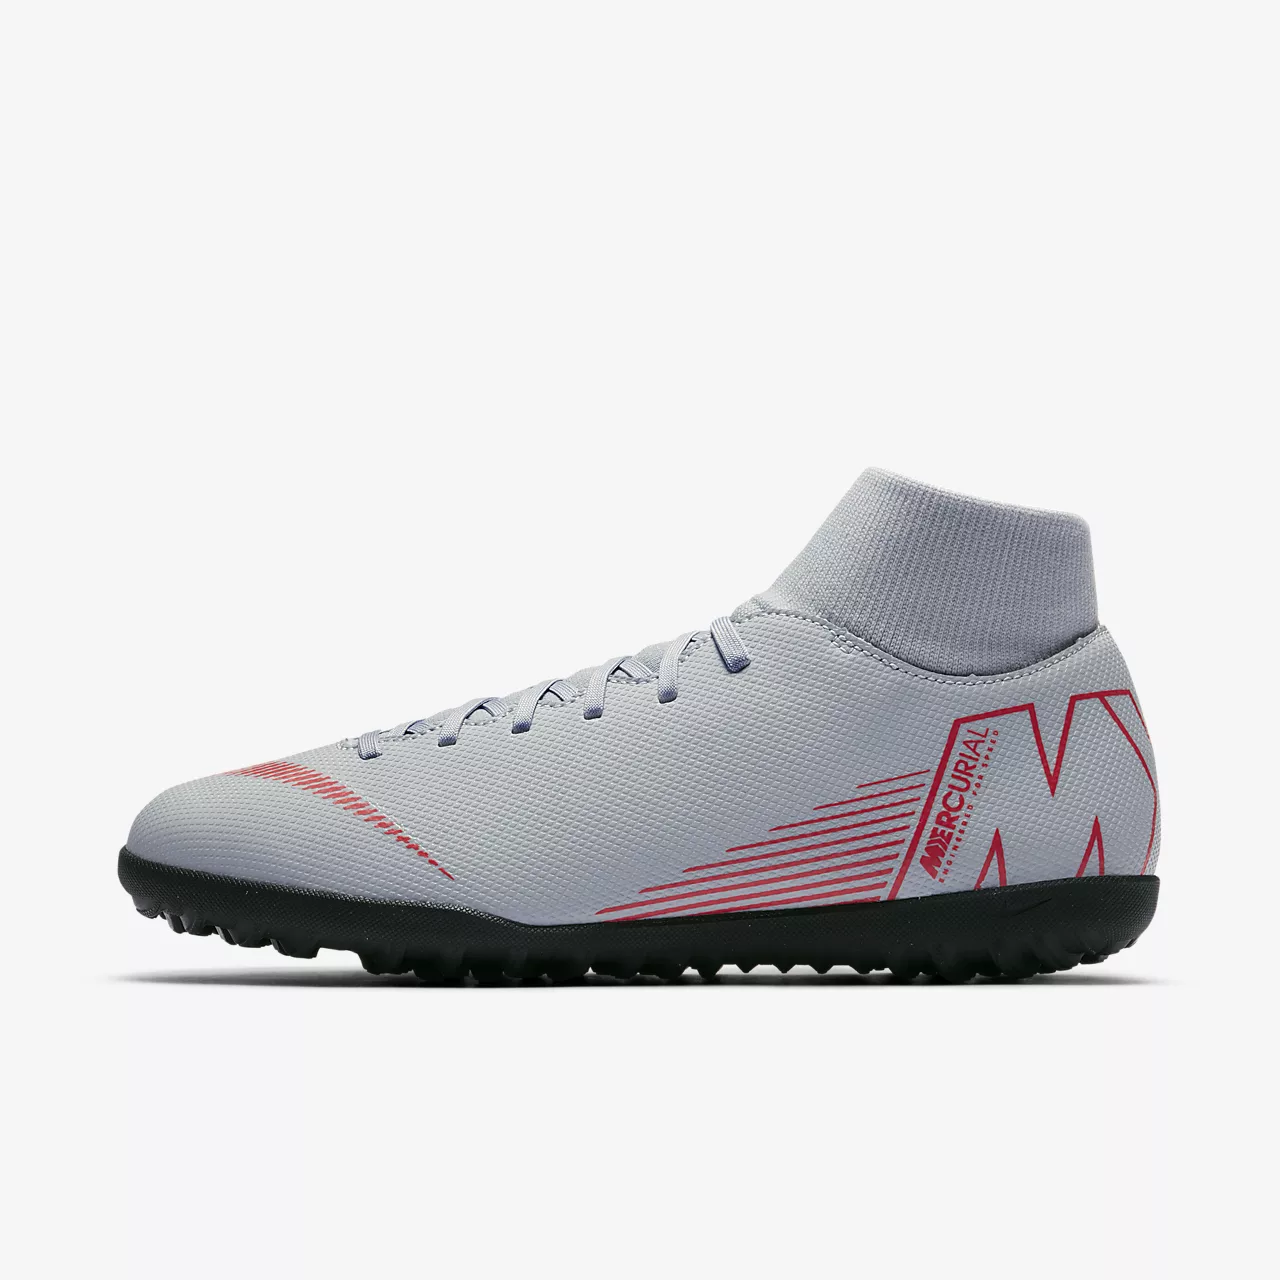 유럽직배송 나이키 NIKE Nike MercurialX Superfly VI Club Turf Football Shoe AH7372-060